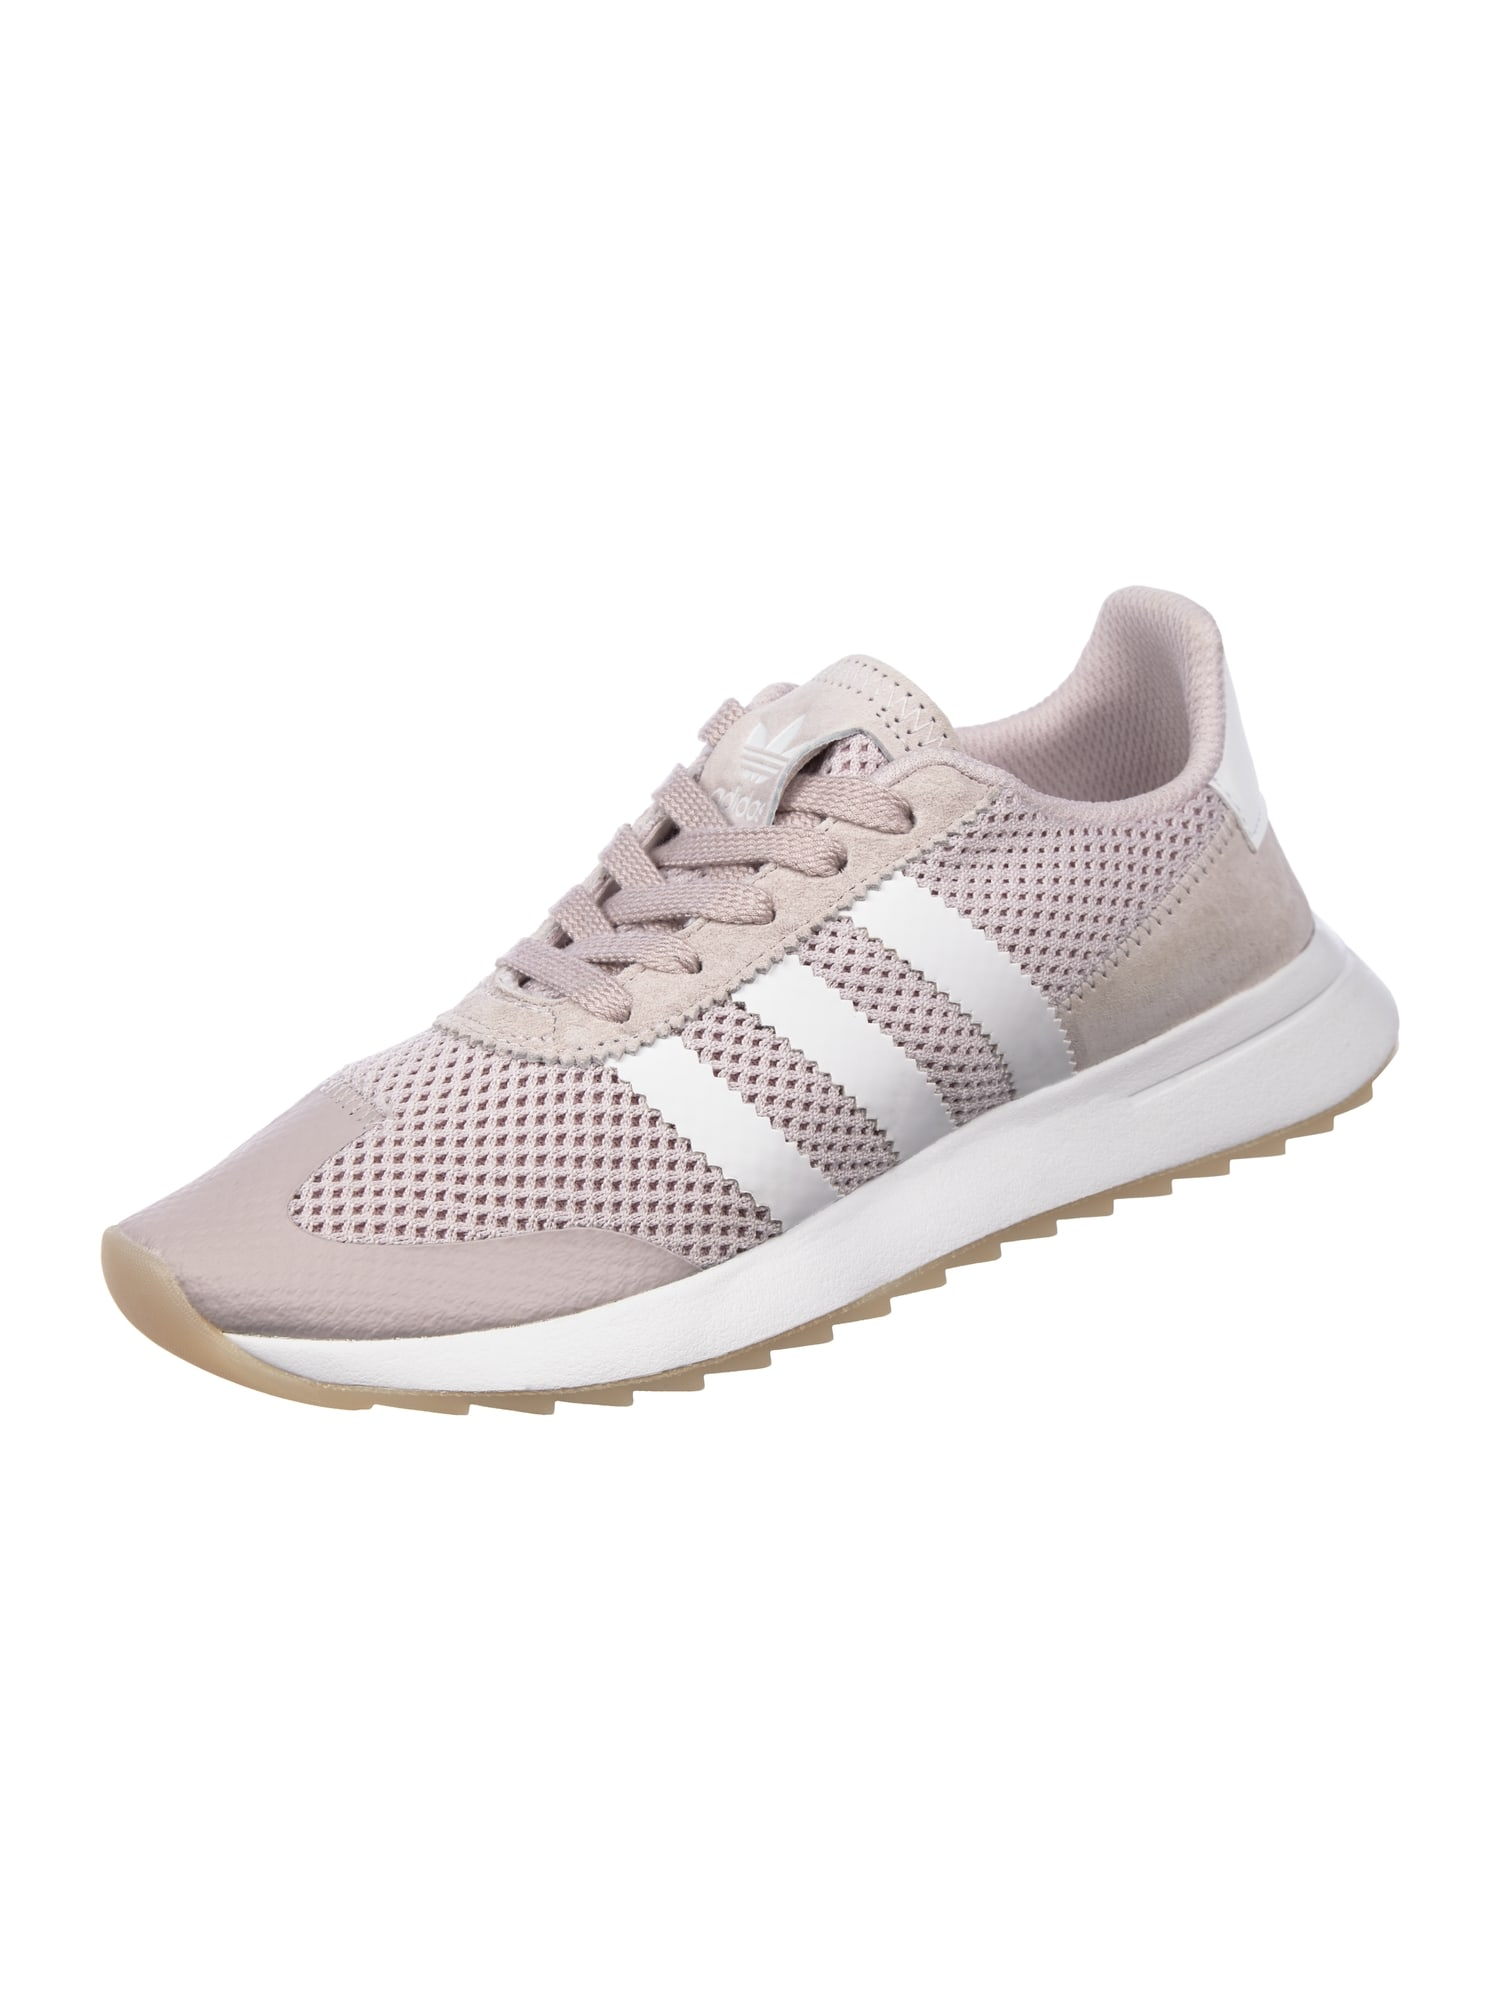 brand new hot products finest selection adidas schuhe damen sale